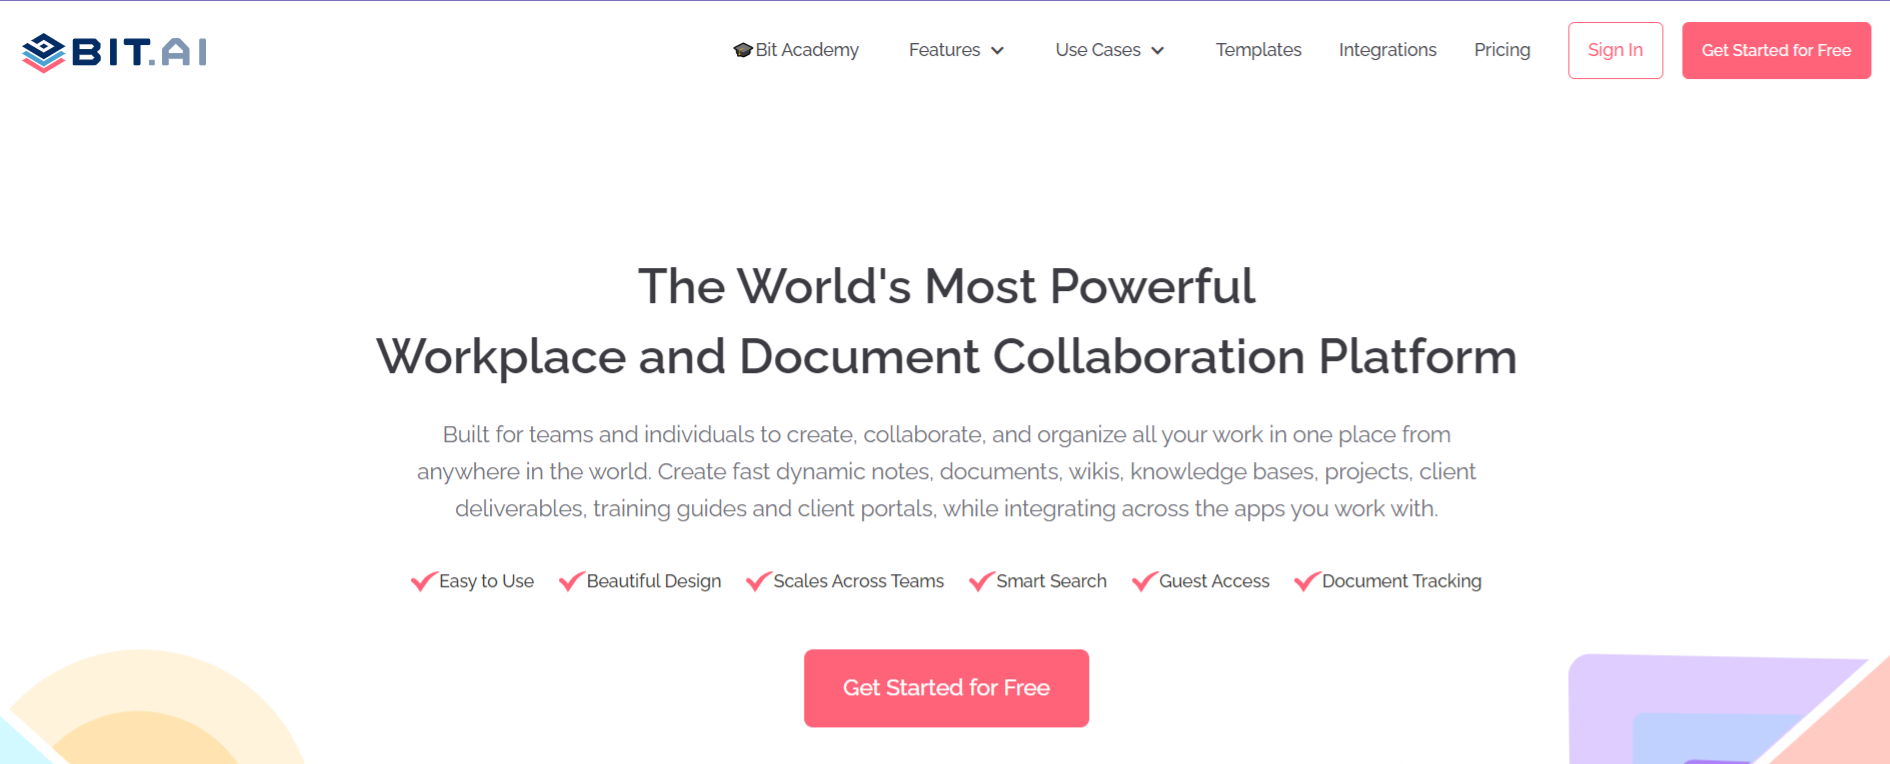 Bit.ai: tool to create a business plan